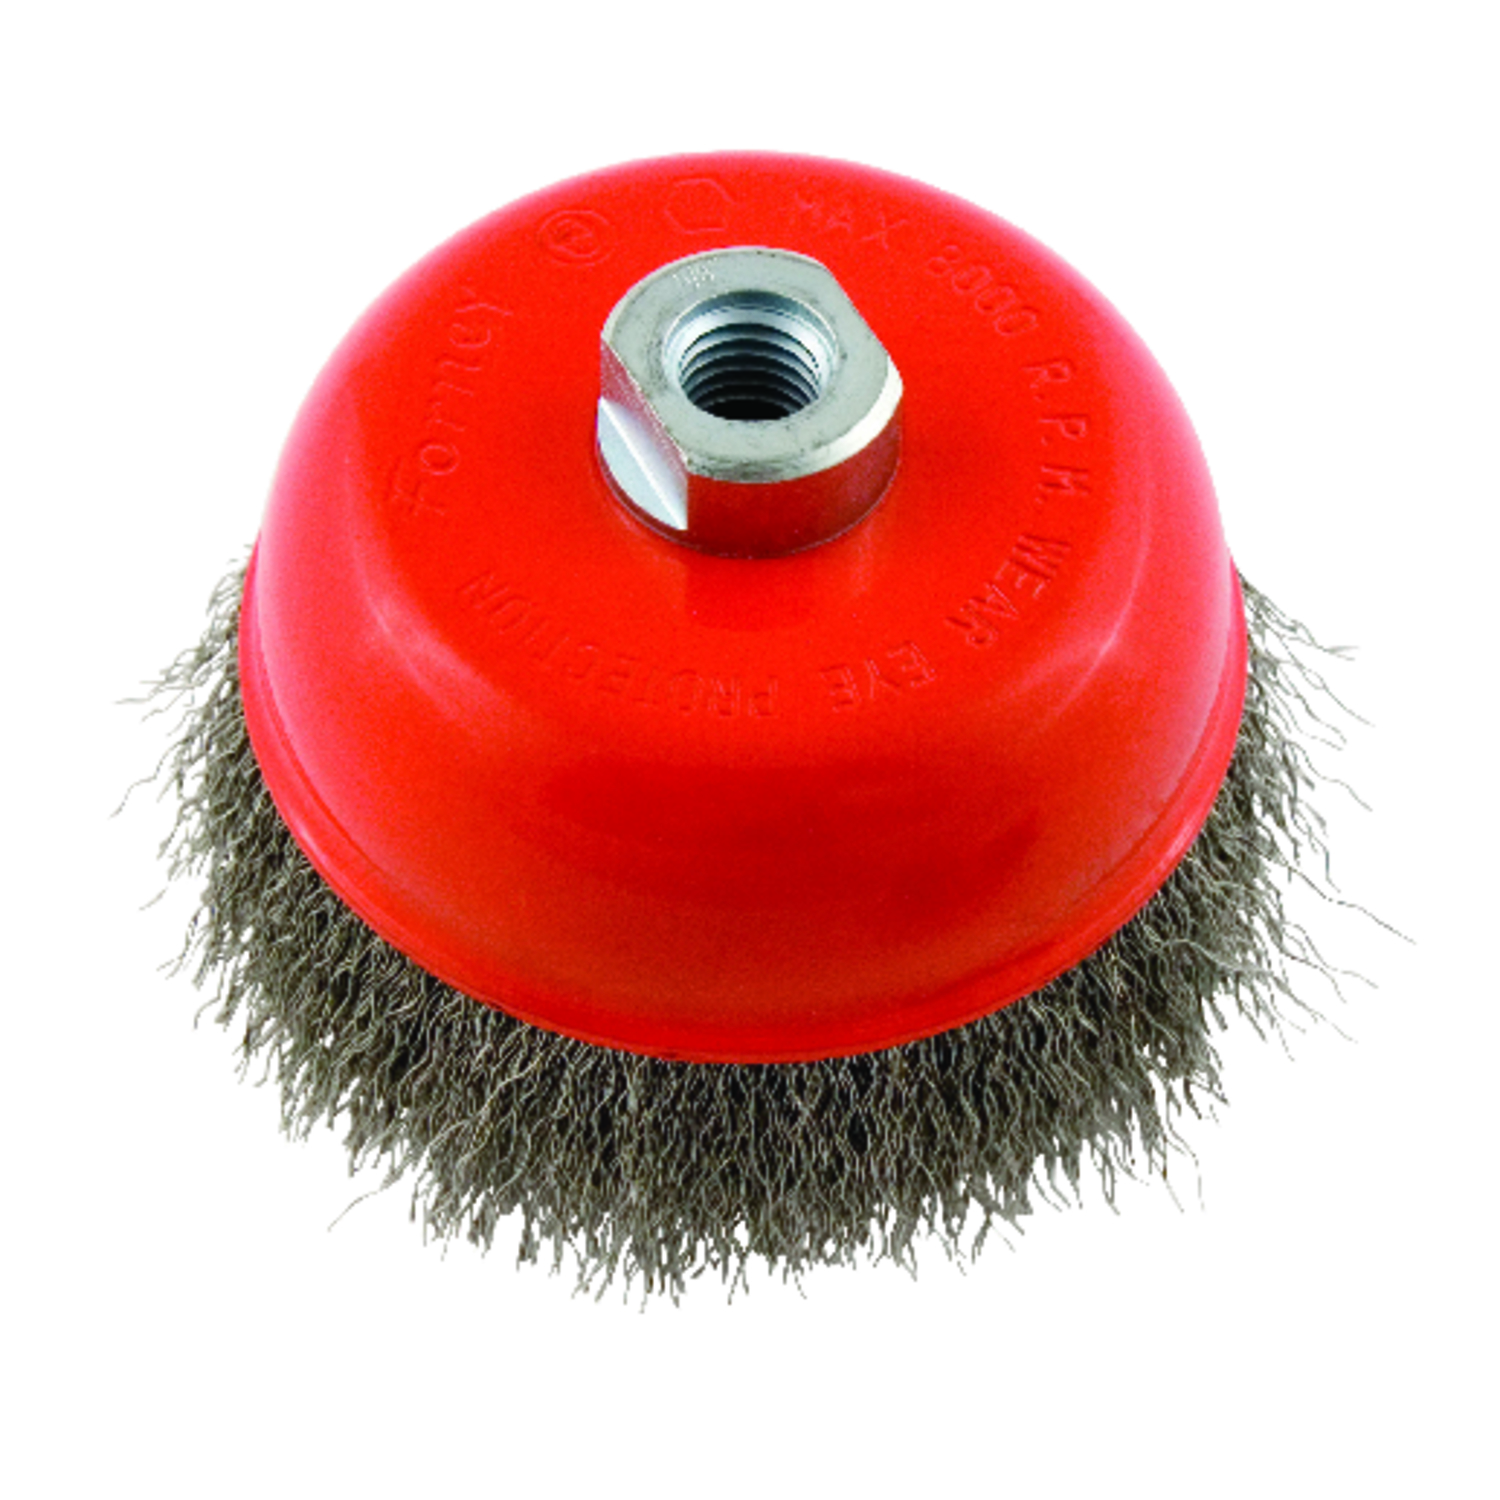 Forney  5 in. Dia. x 5/8 in.  Crimped  Crimped Wire Cup Brush  Steel  1 pc.